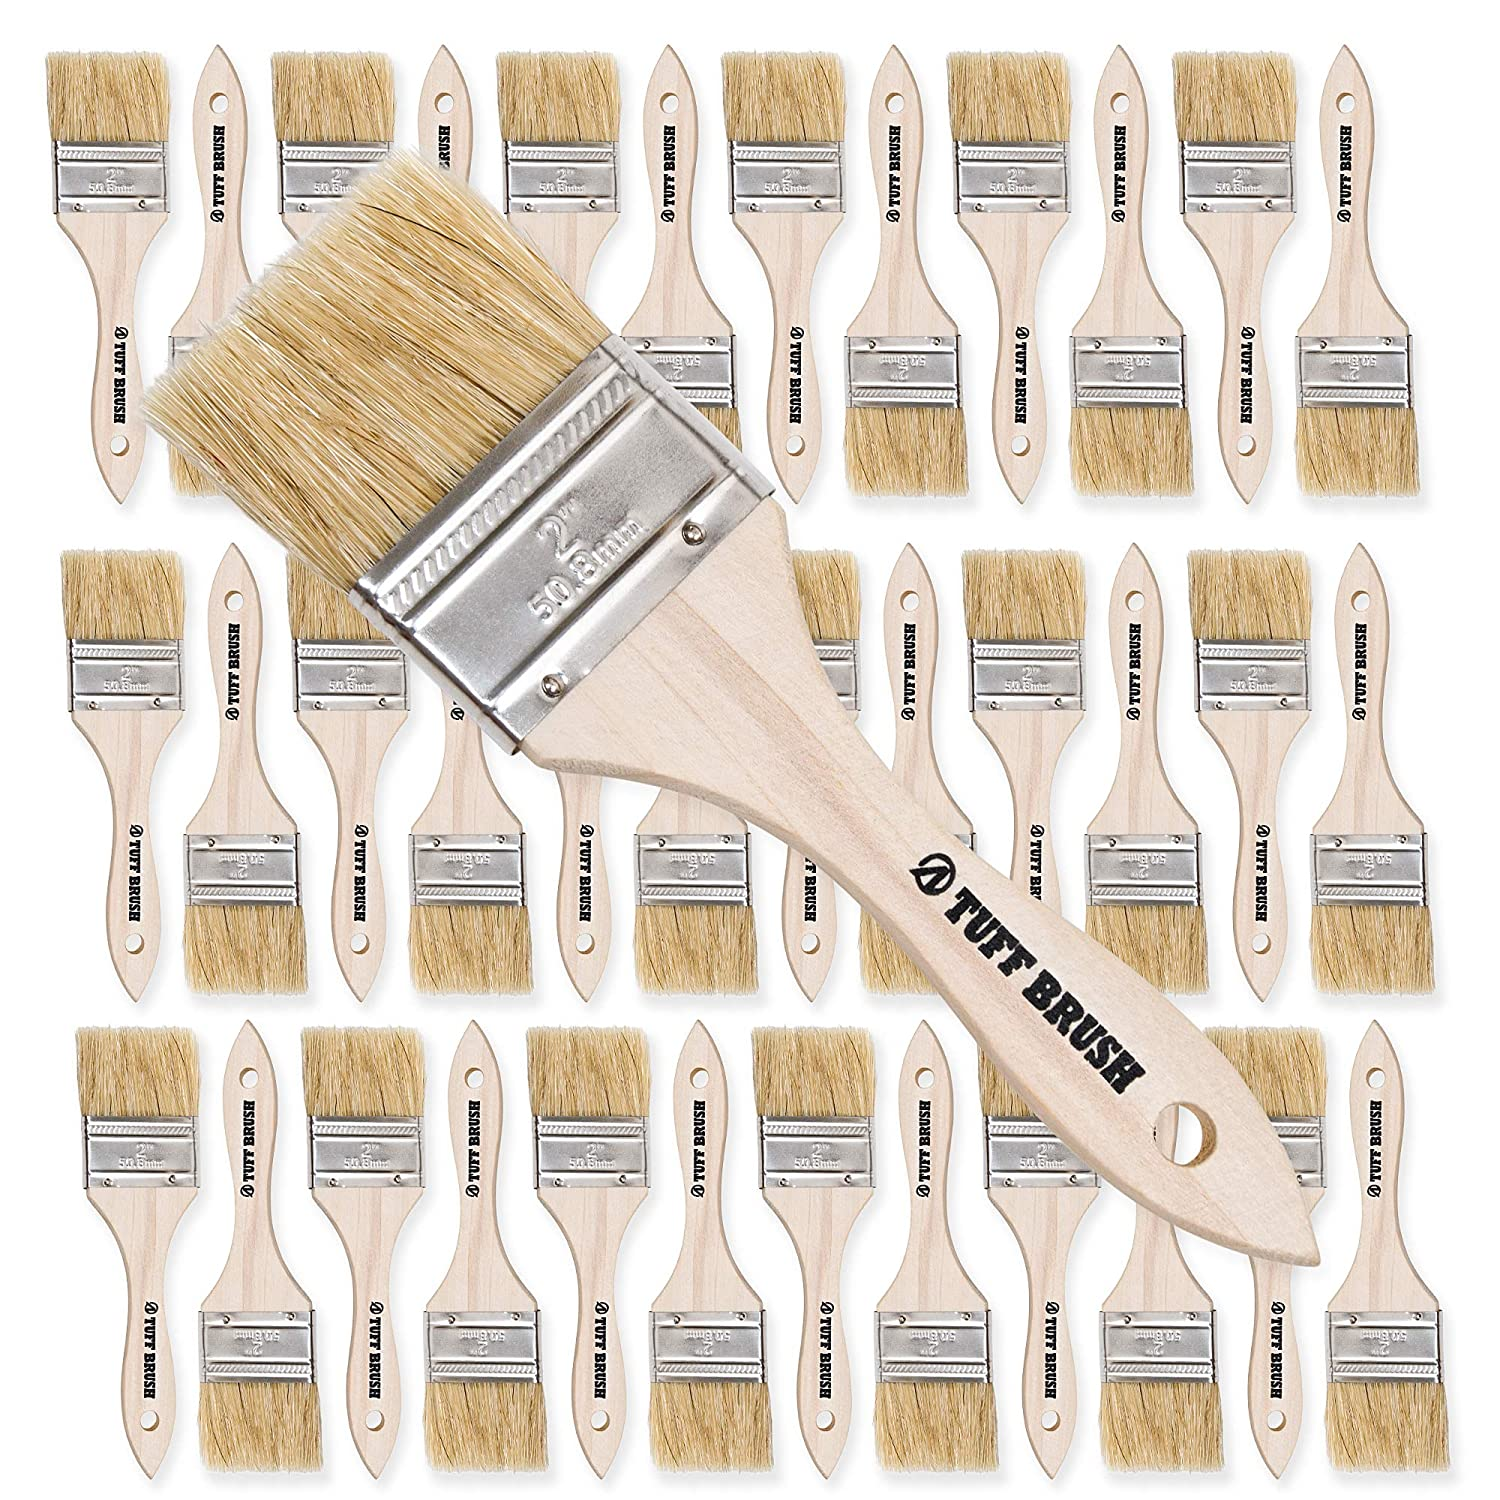 TUFF BRUSH 2 inch Chip Paint Brushes, Pack of 50